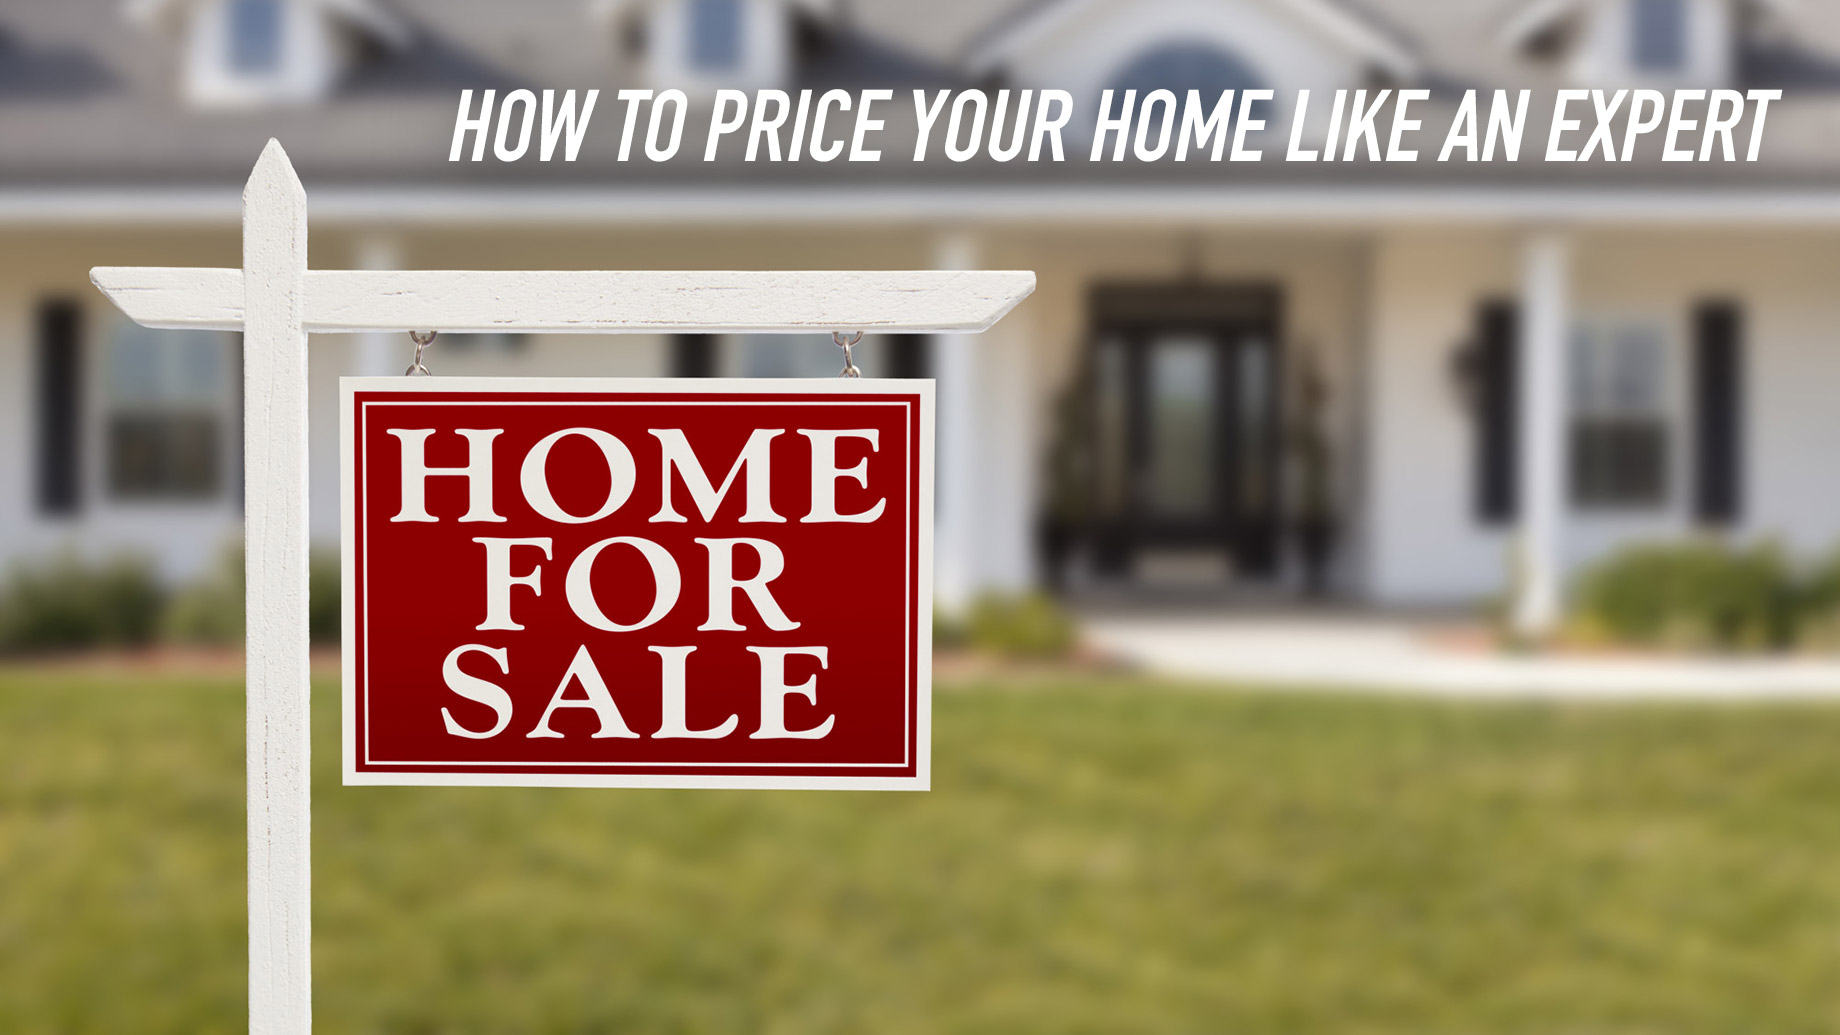 How to Price Your Home Like an Expert